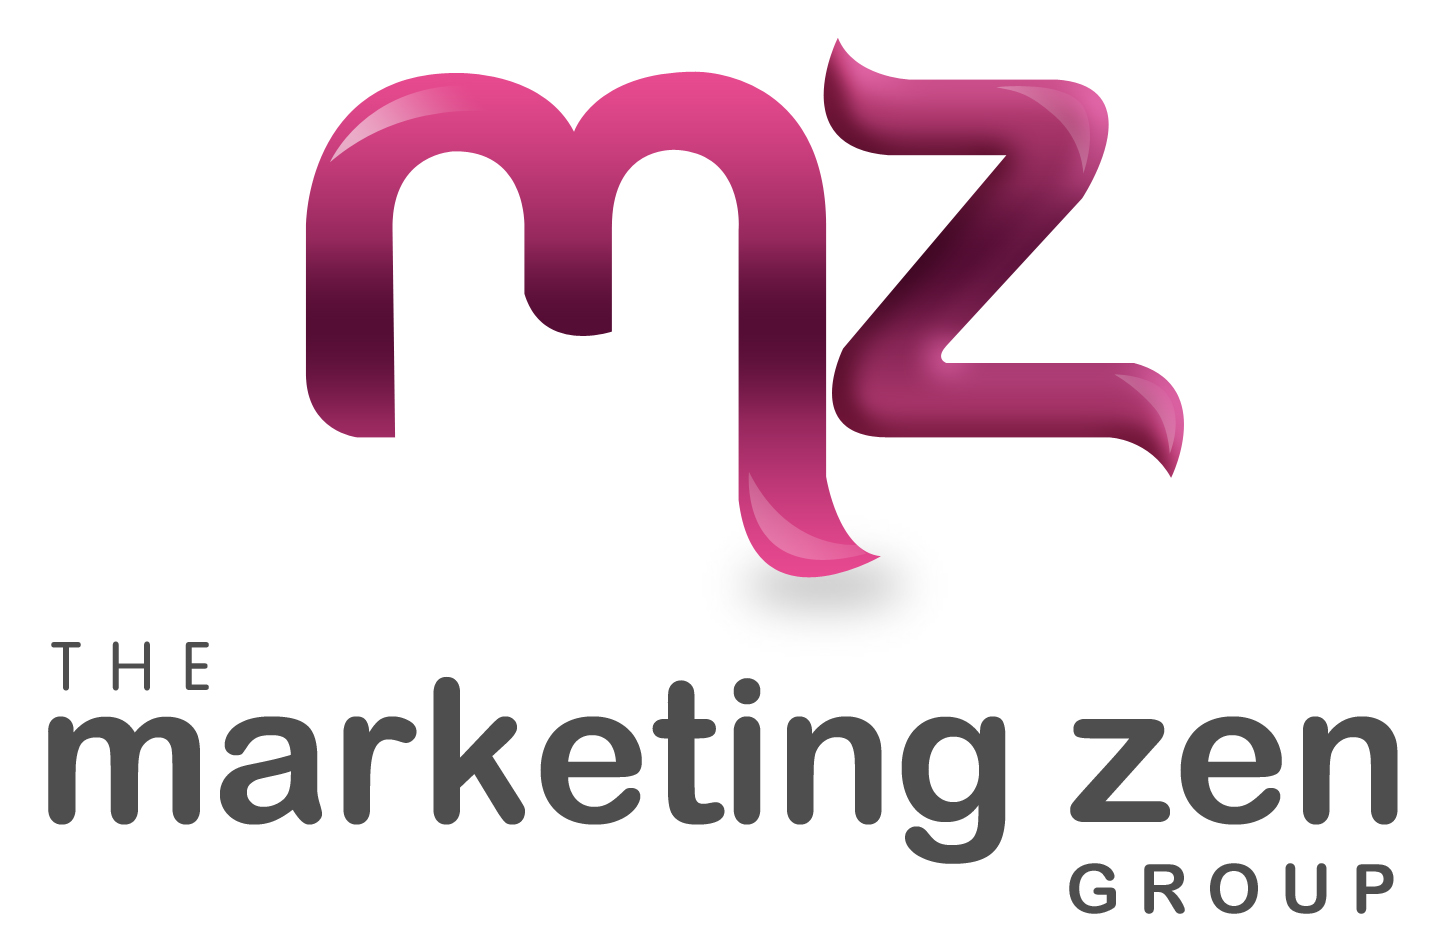 The Marketing Zen Group